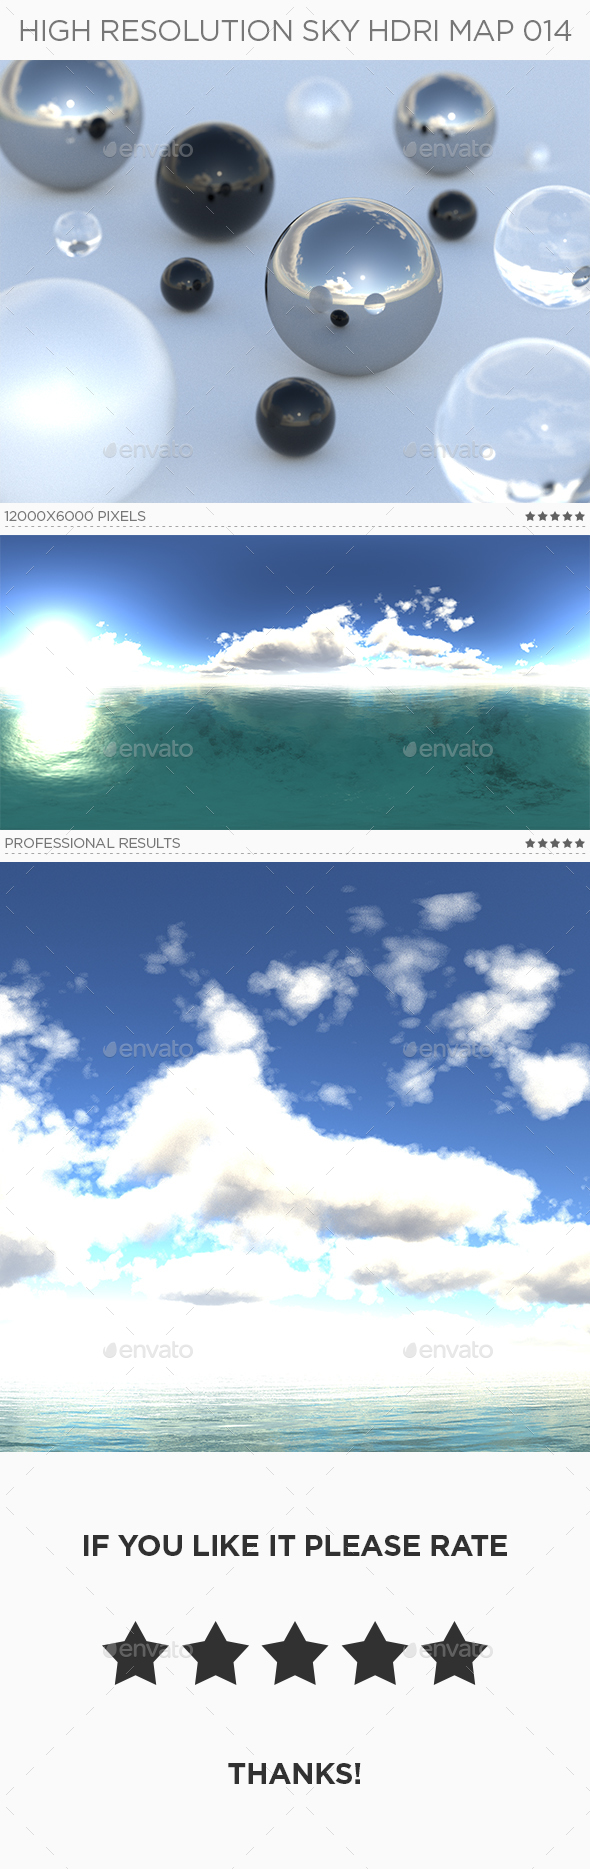 High Resolution Sky HDRi Map 014 - 3DOcean Item for Sale